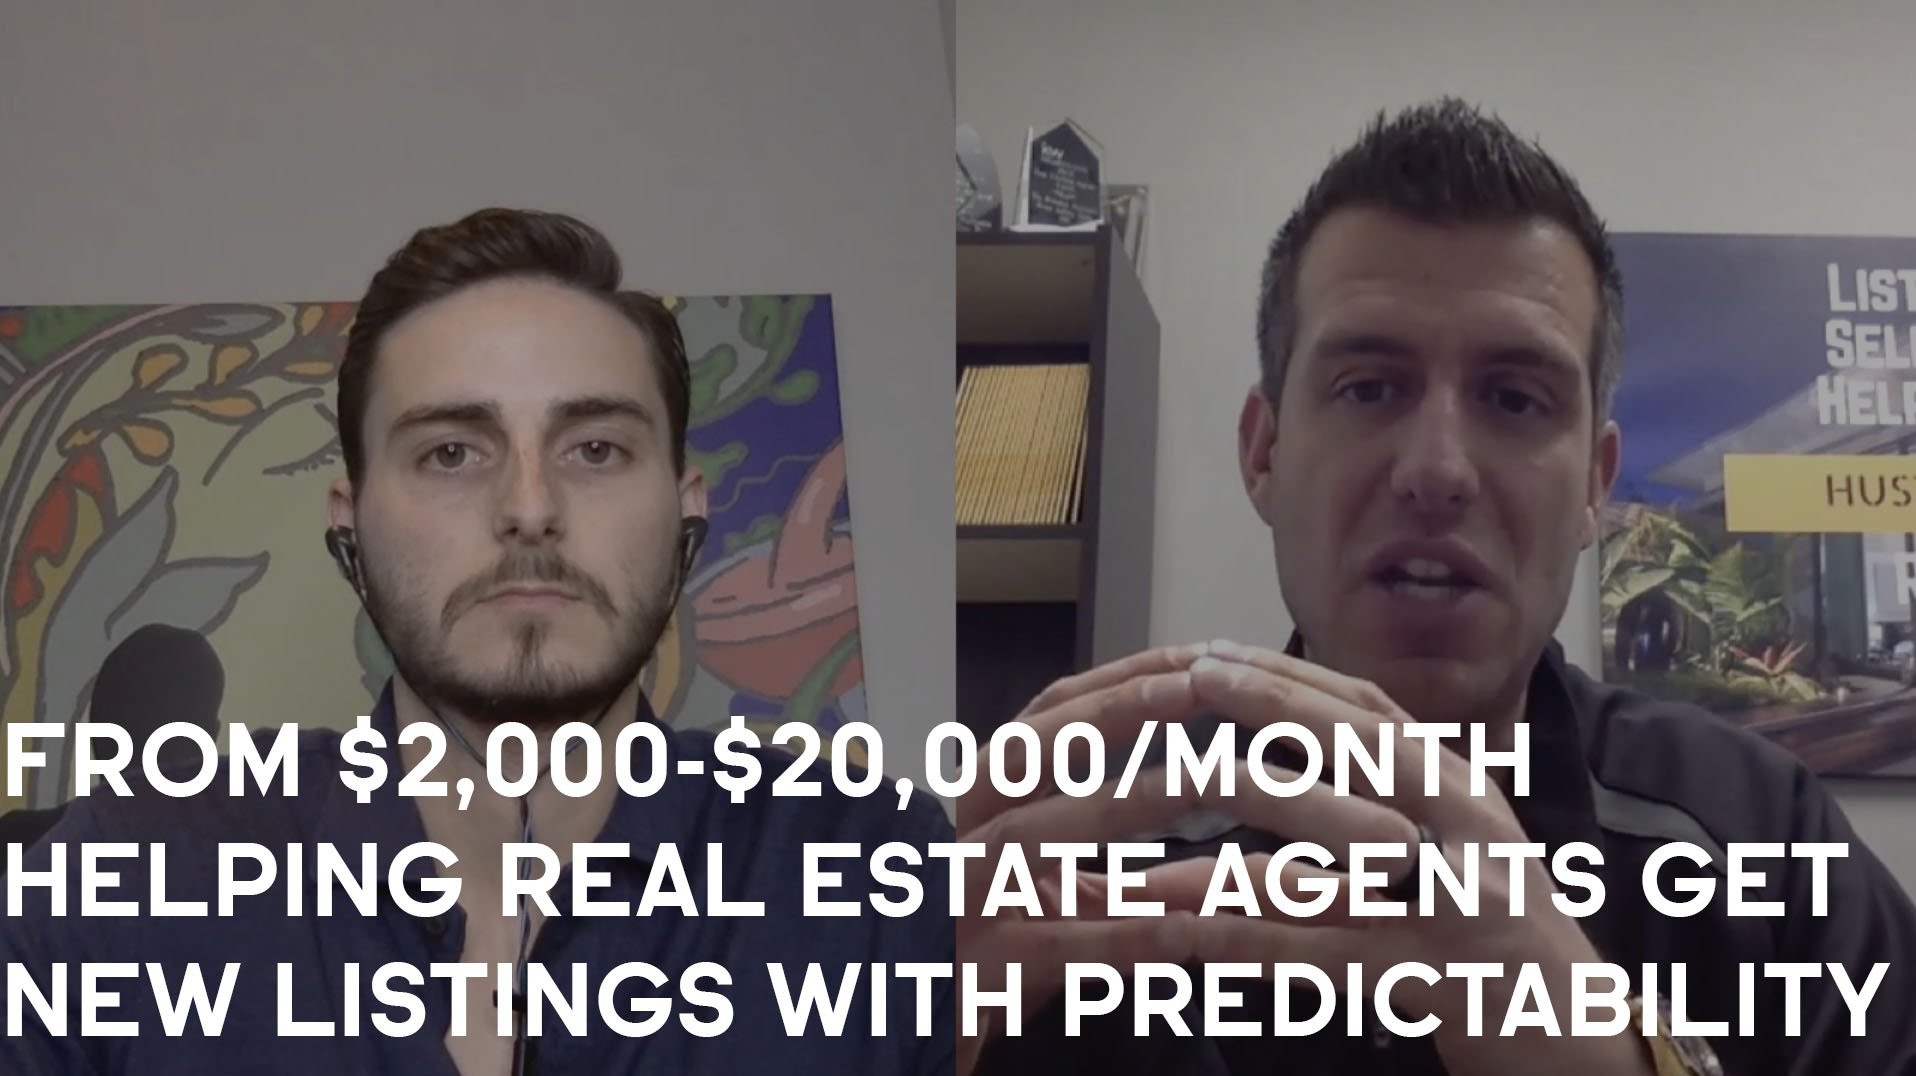 From $2,000-$20,000/Month Helping Real Estate Agents Get New Listings With Predictability